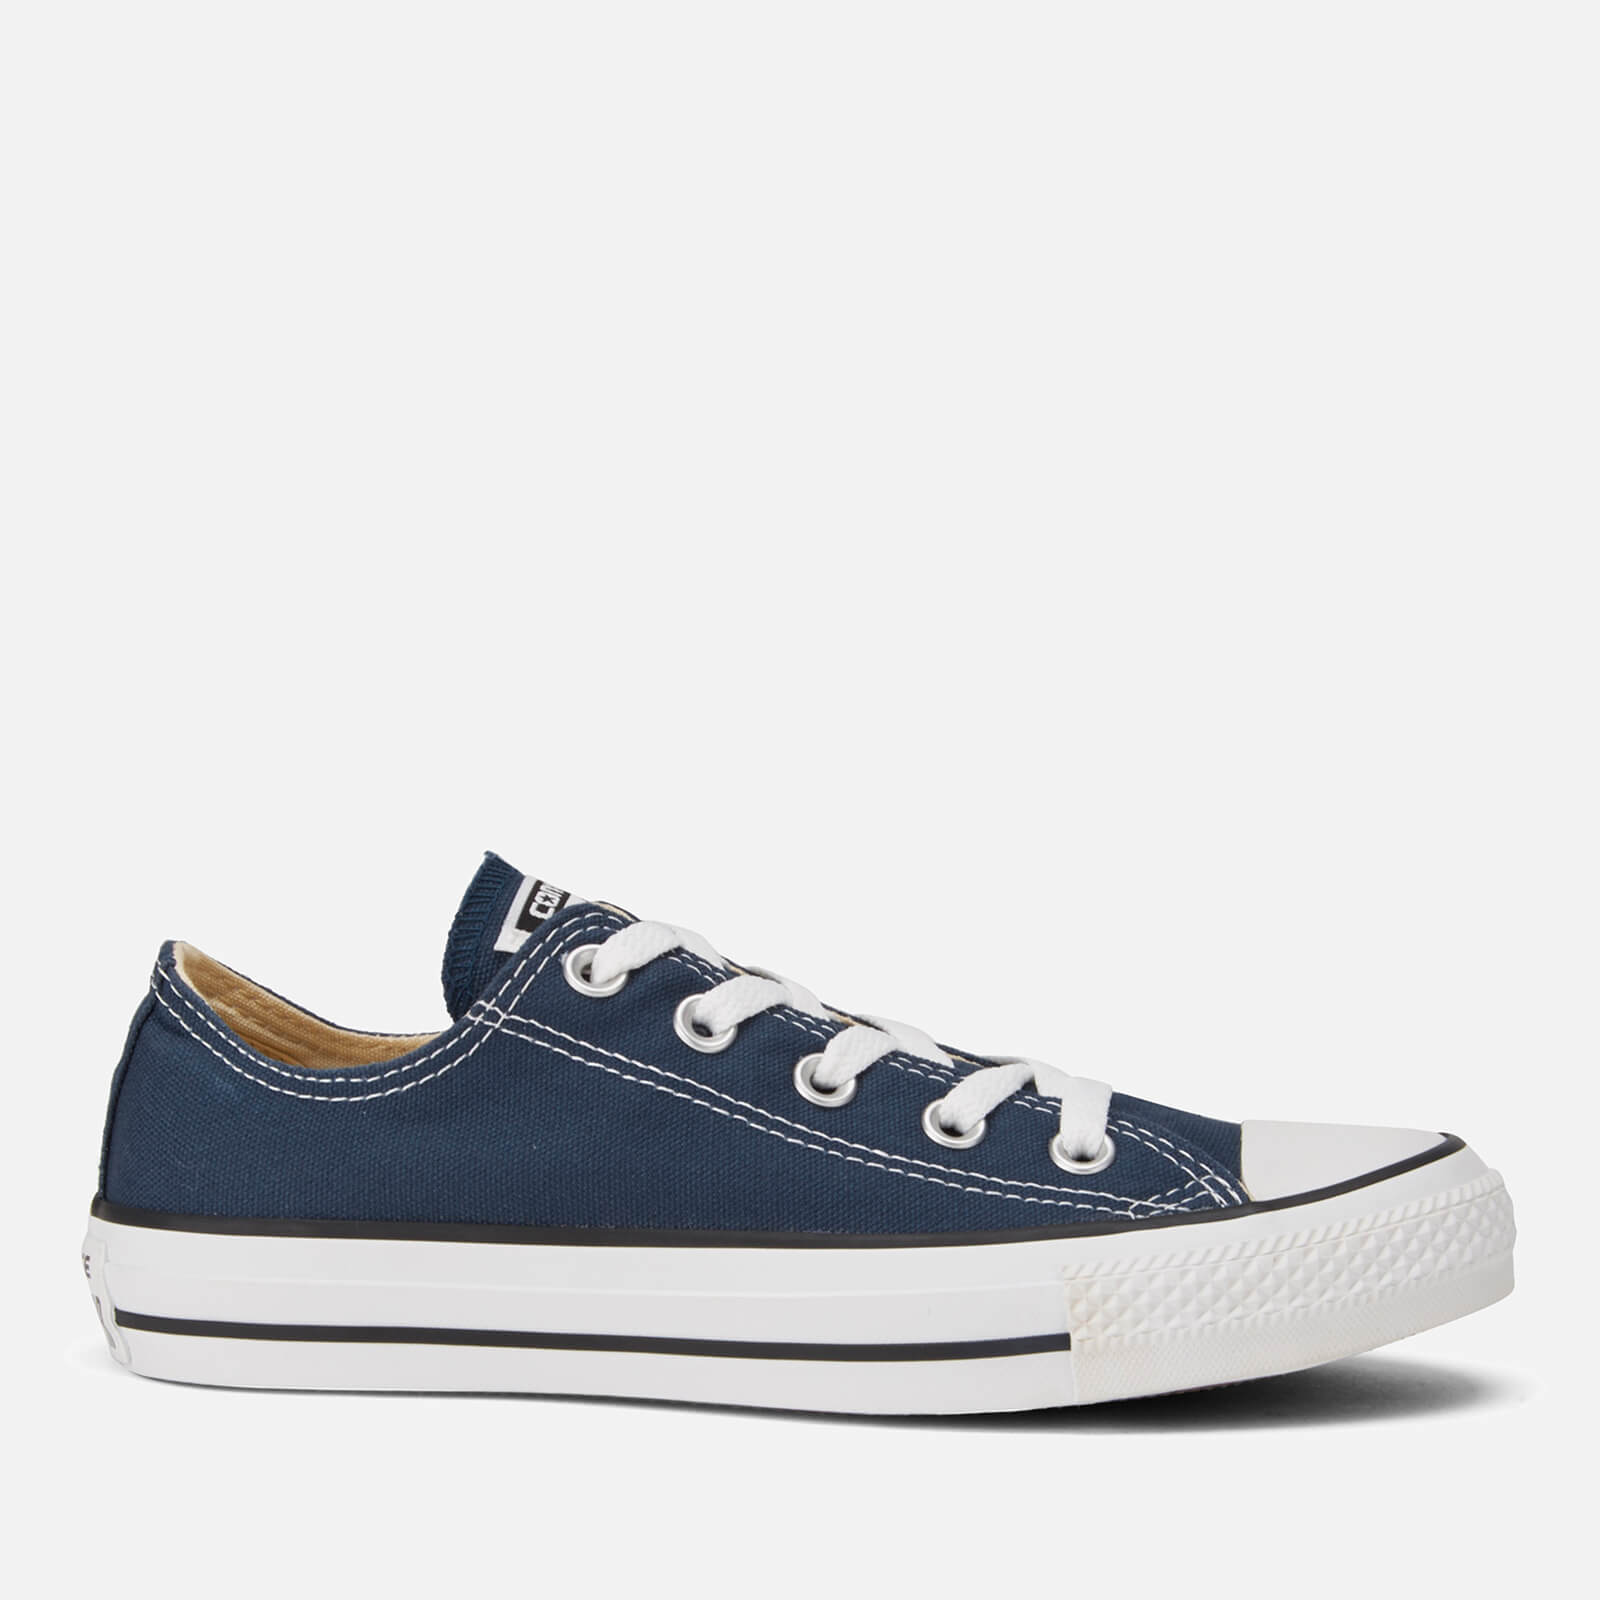 b92318f137fa Converse Chuck Taylor All Star Ox Canvas Trainers - Navy Mens ...